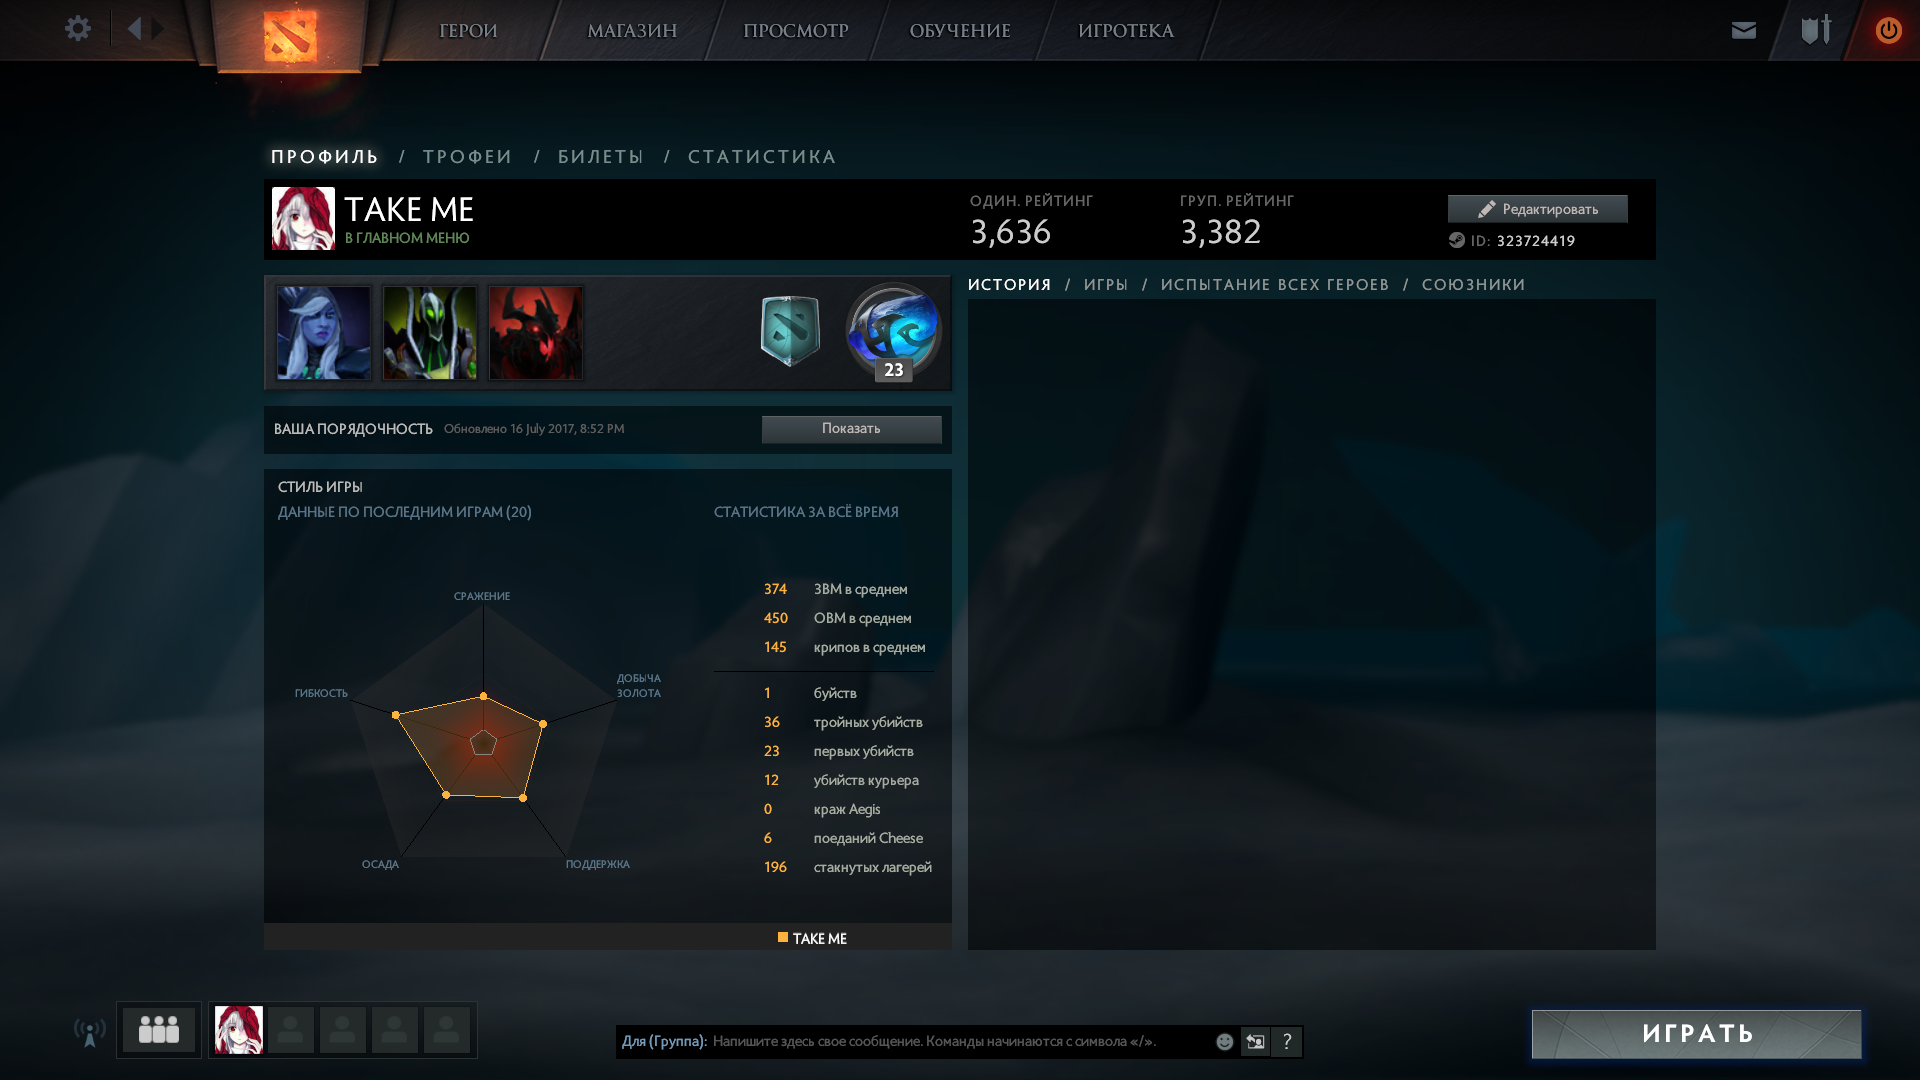 Solo MMR - 3,636 ; Party MMR - 3,382 + CS:GO